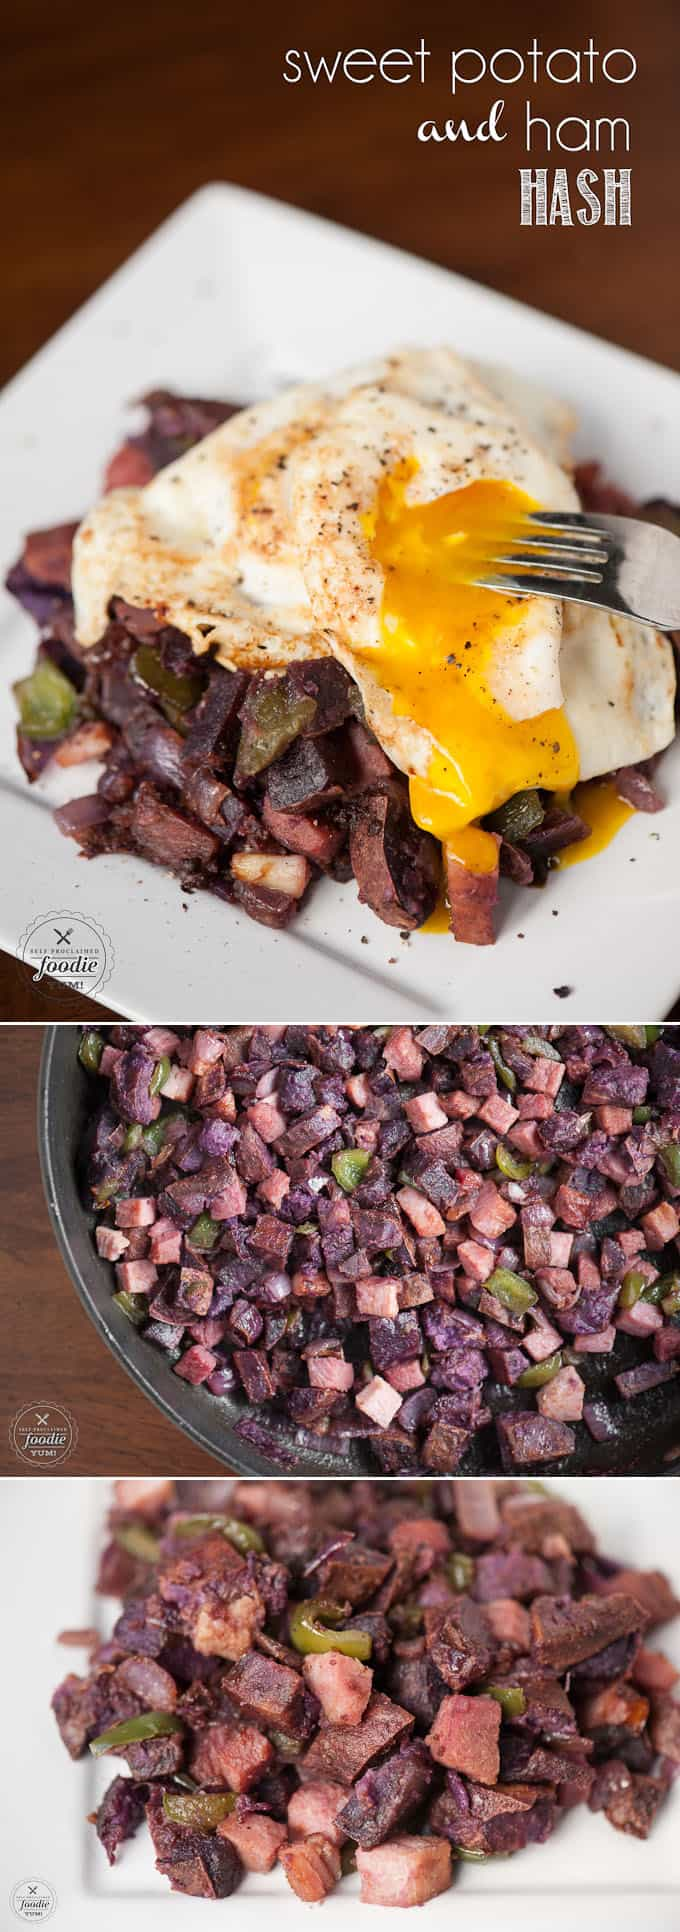 Mix up your breakfast routine and enjoy this hearty and nutritious Sweet Potato and Ham Hash that tastes wonderful with a couple of eggs.